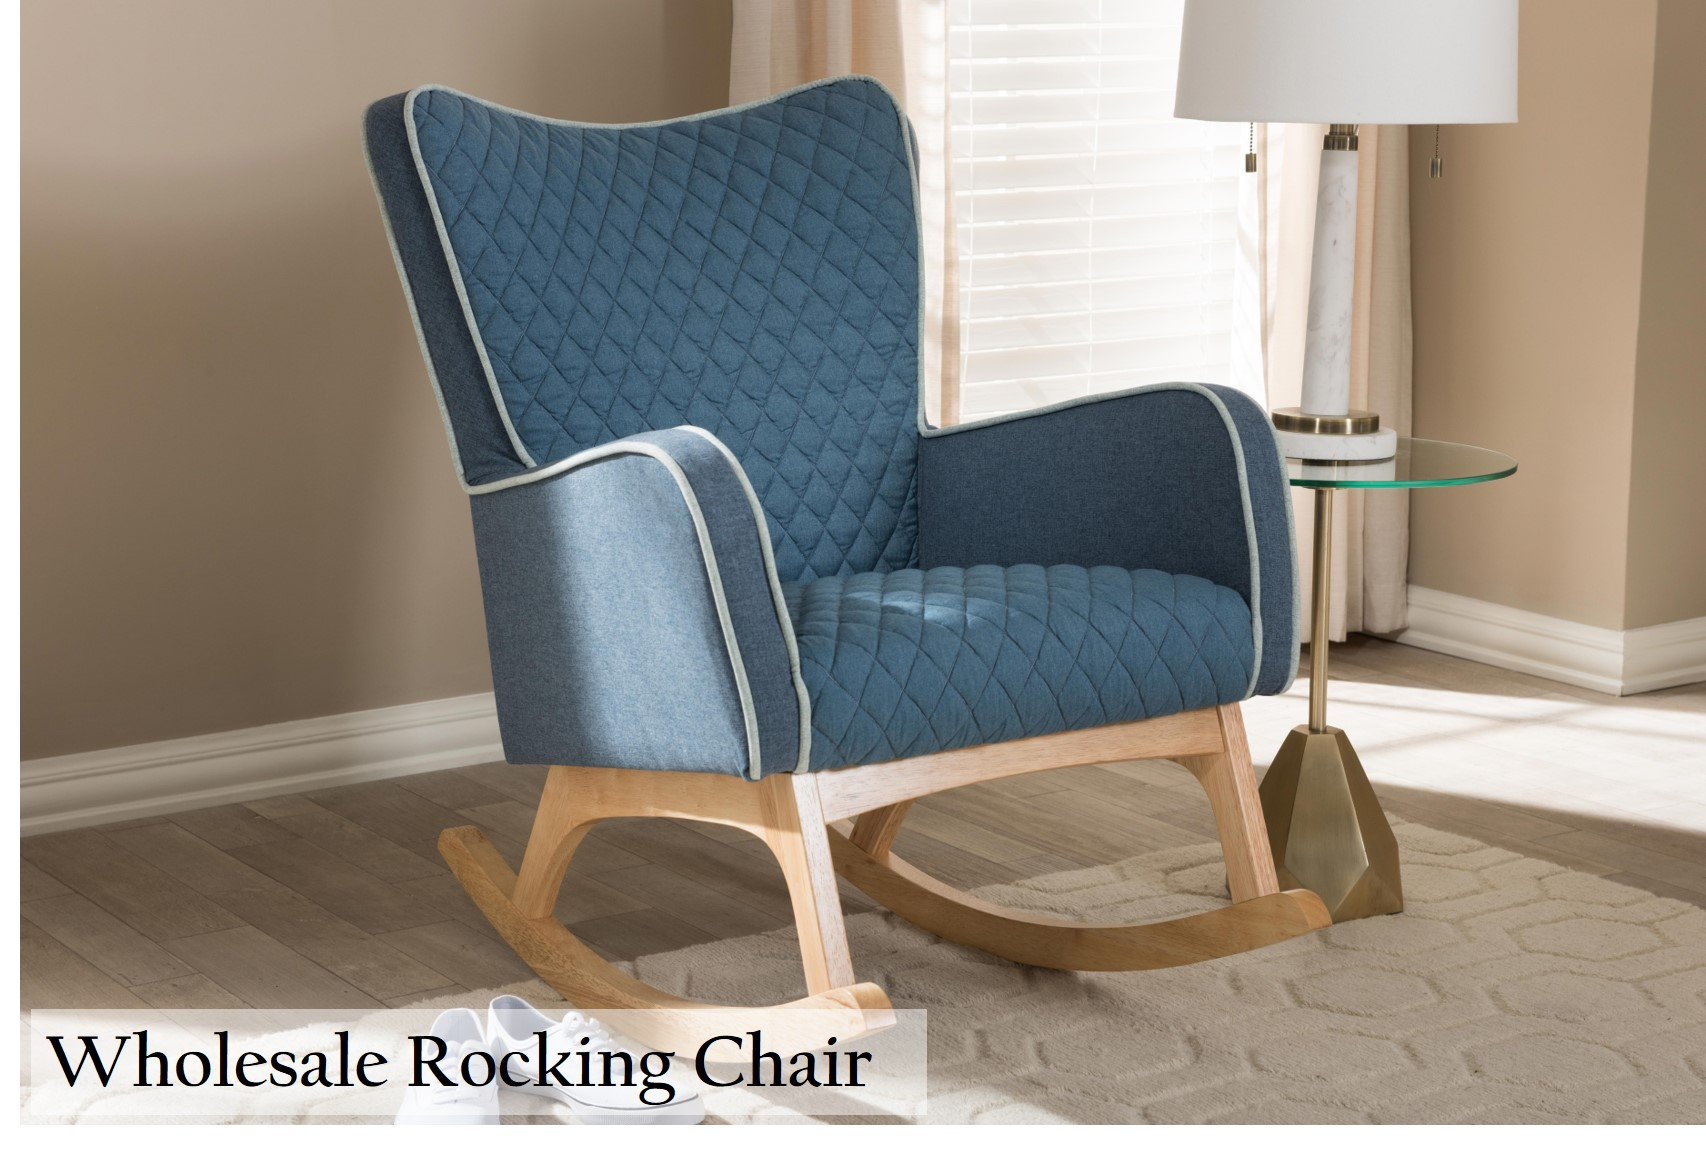 wholesale chairs and tables in los angeles ice cream sandwich chair furniture restaurant commercial